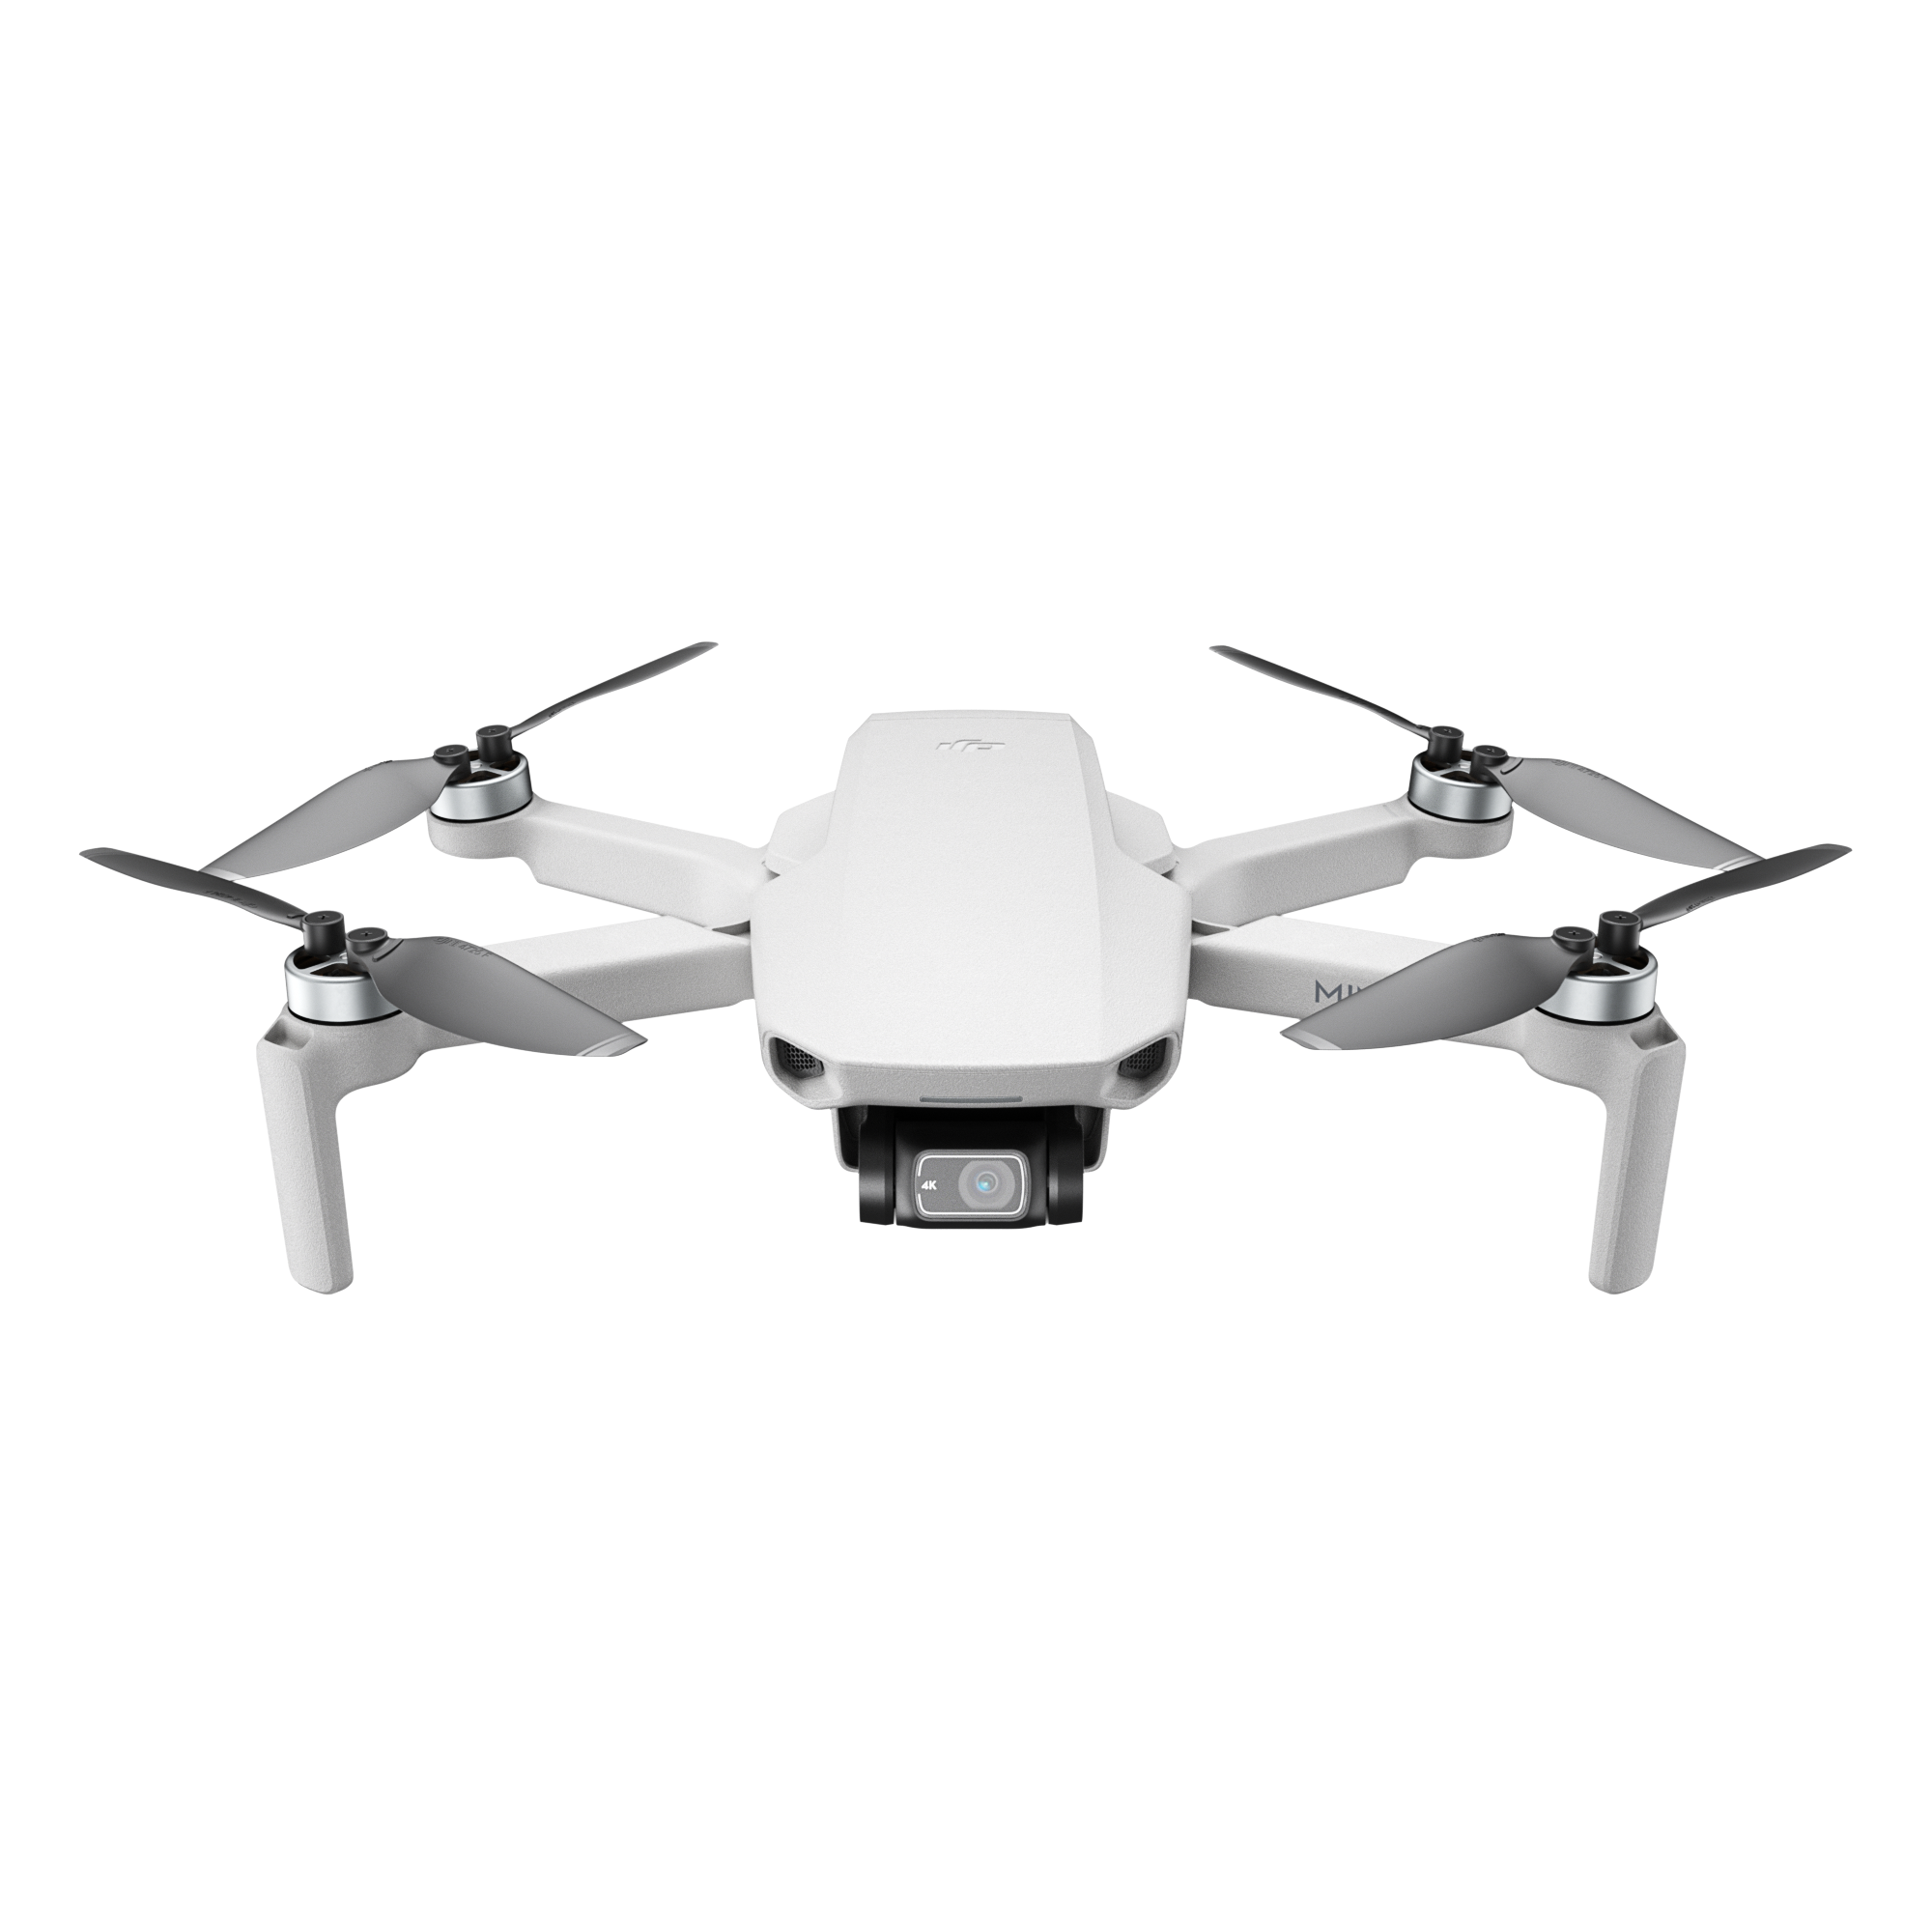 another close up photo of the DJI MINI 2